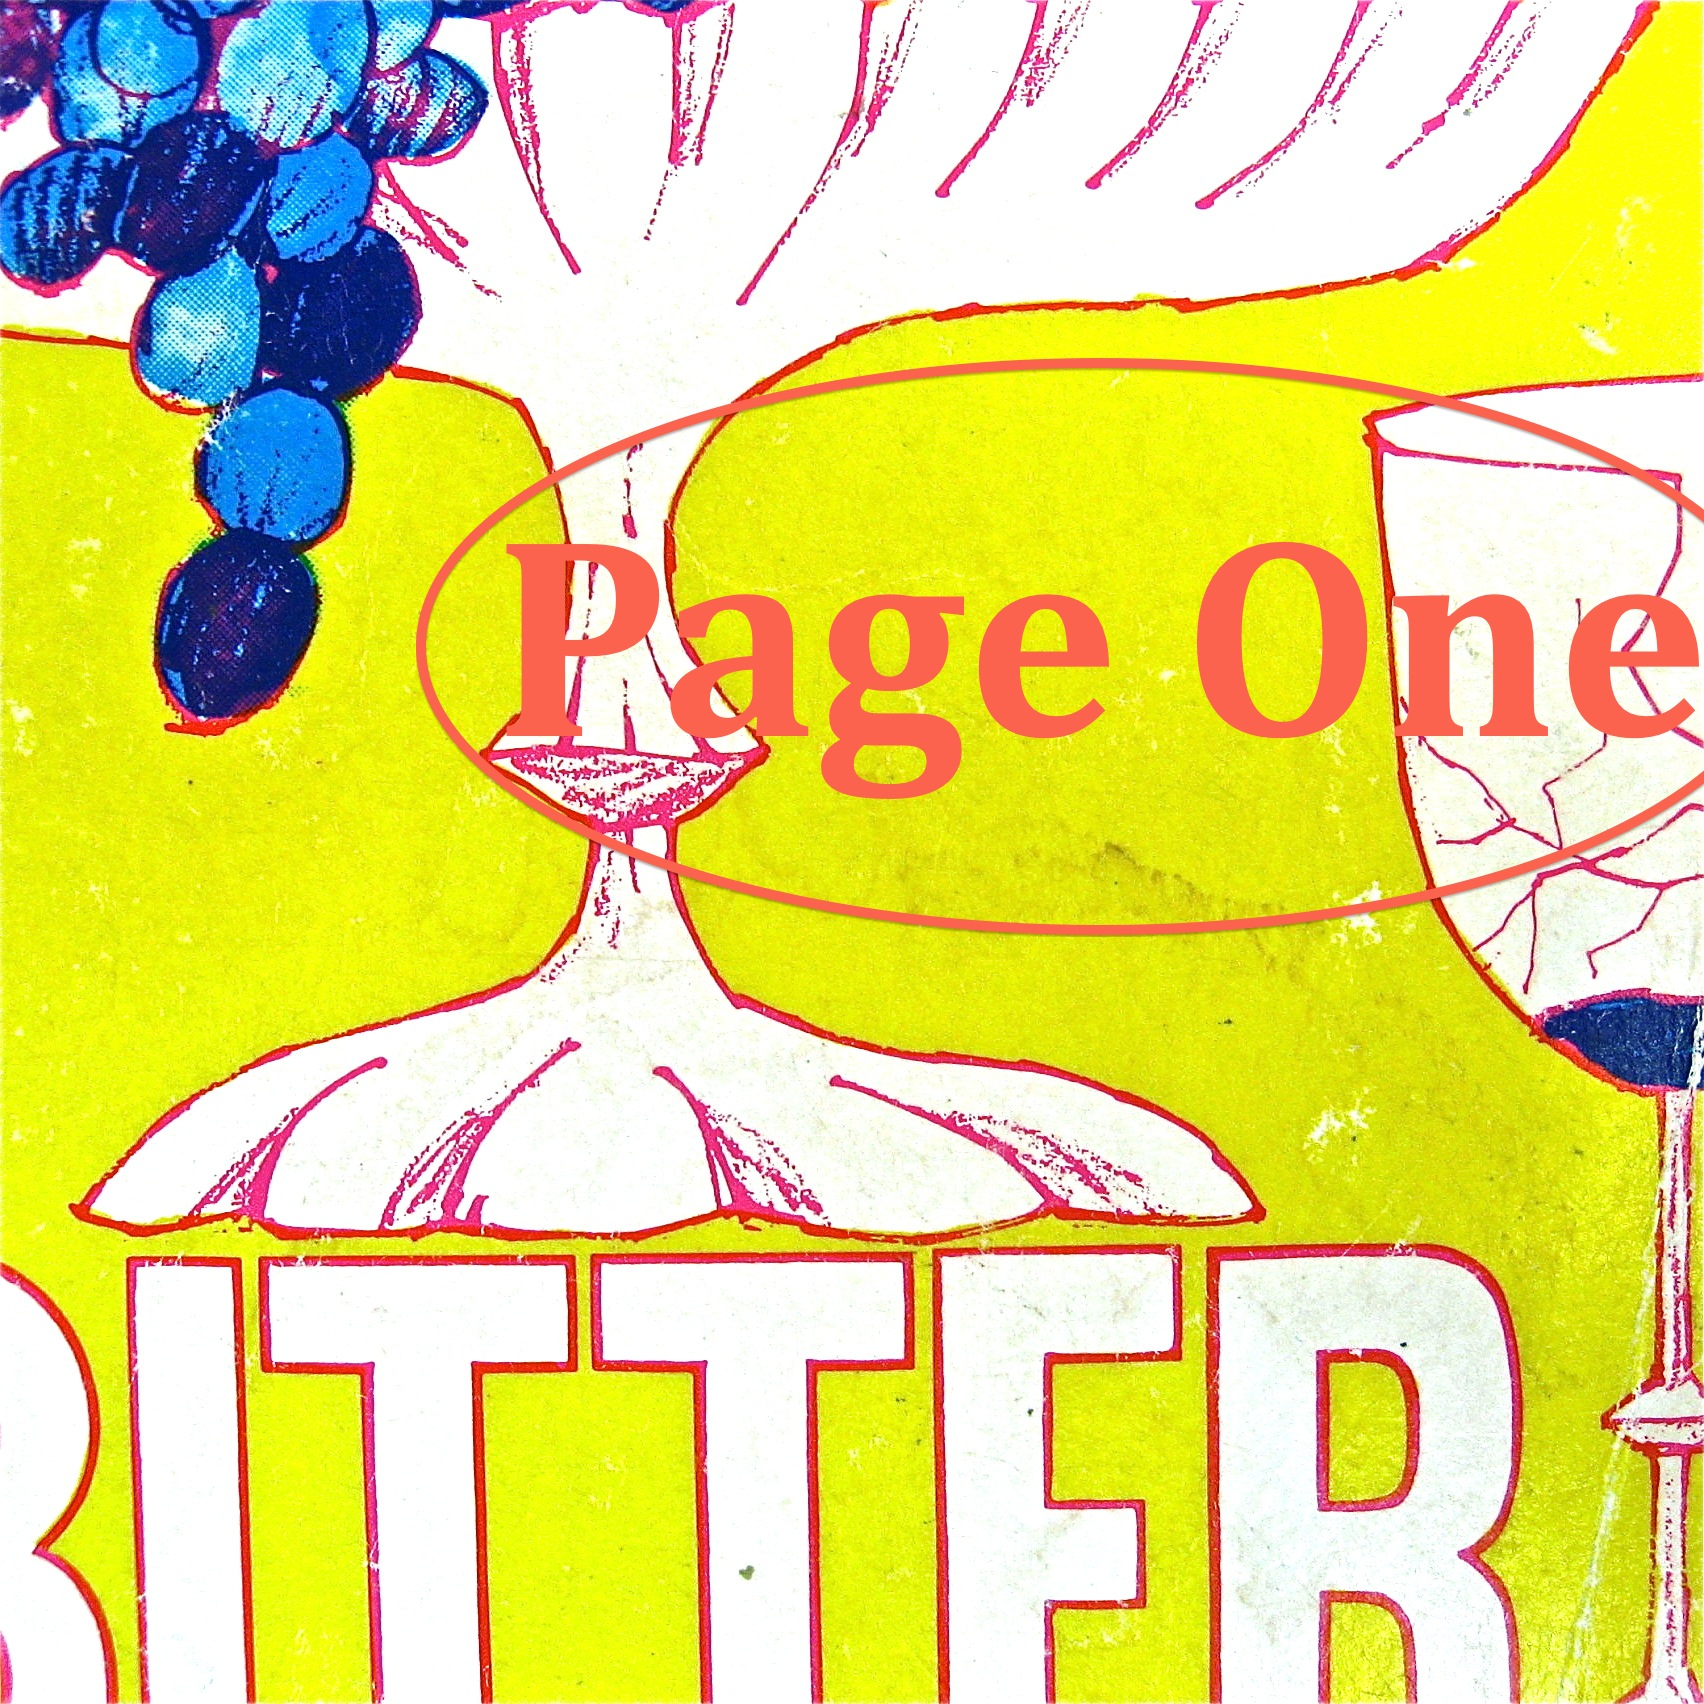 Episode image is a detail from the cover of Bitter Lemons by Lawrence Durrell, published by Dutton; cover illustration by John Alcorn.